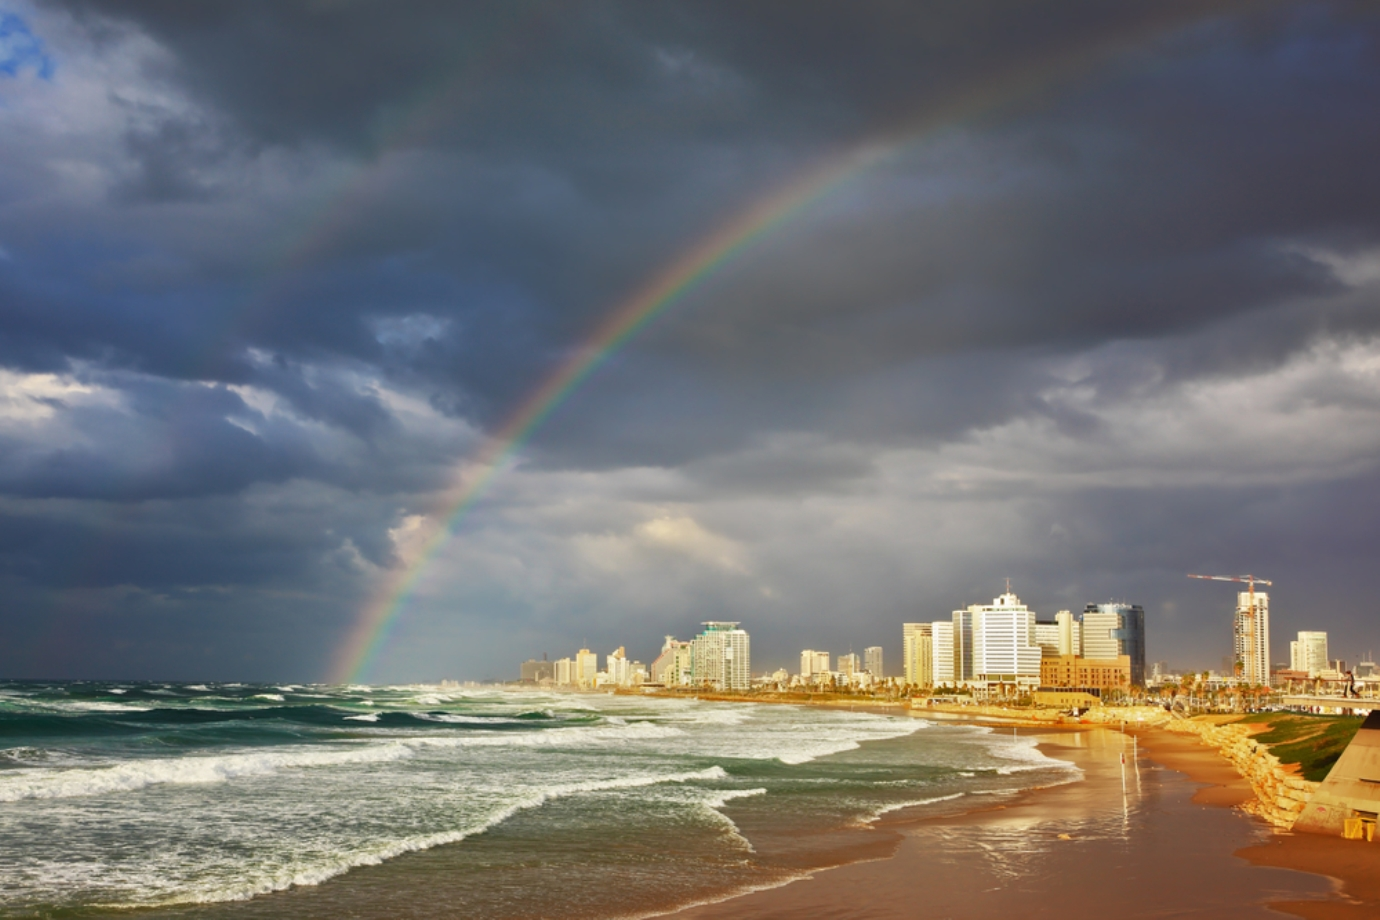 A rainbow lights up the promenade in Tel Aviv. Photo via Shutterstock.com